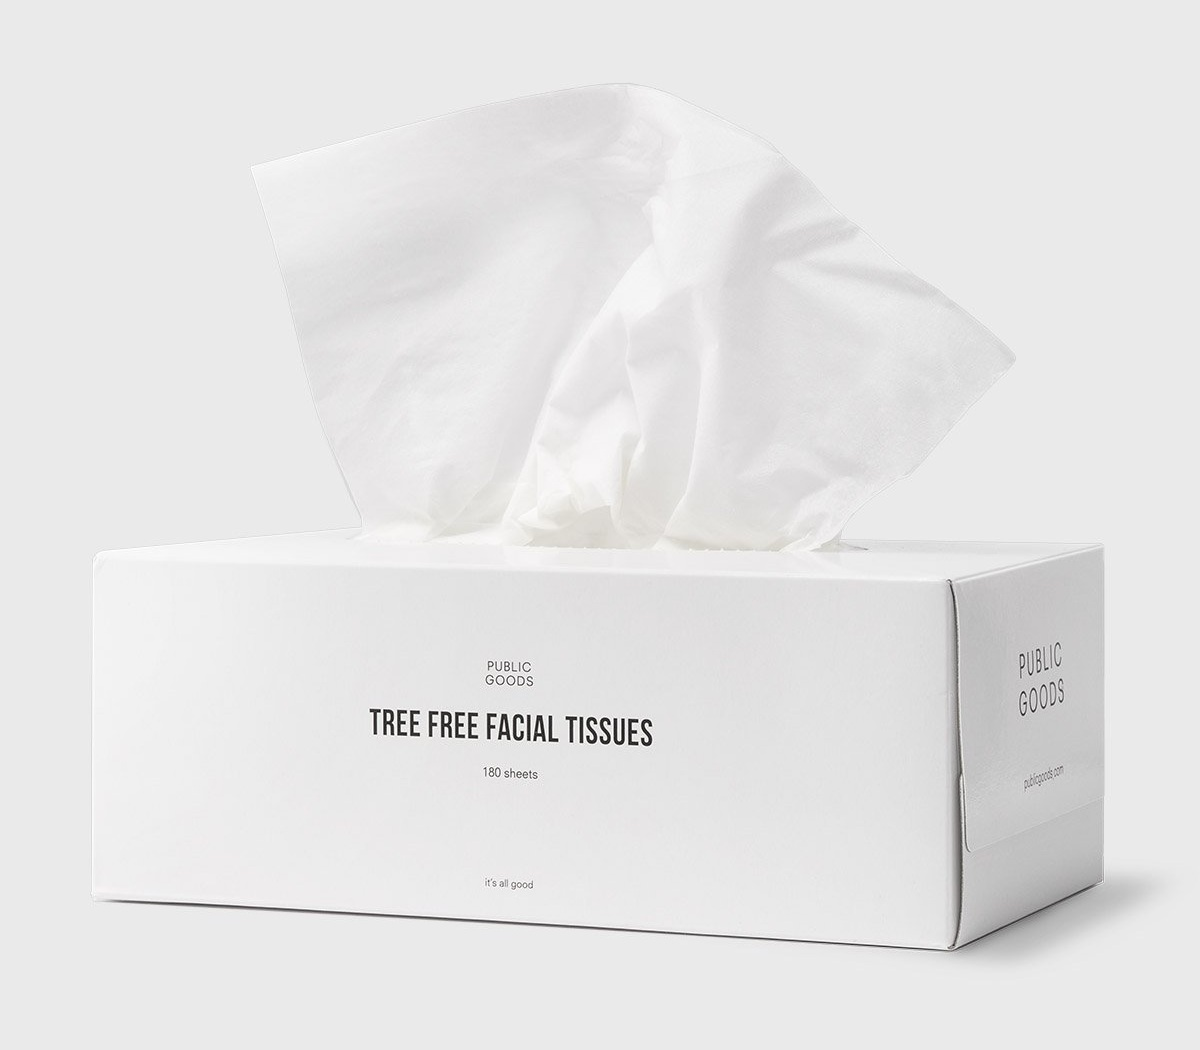 Tree Free Facial Tissues